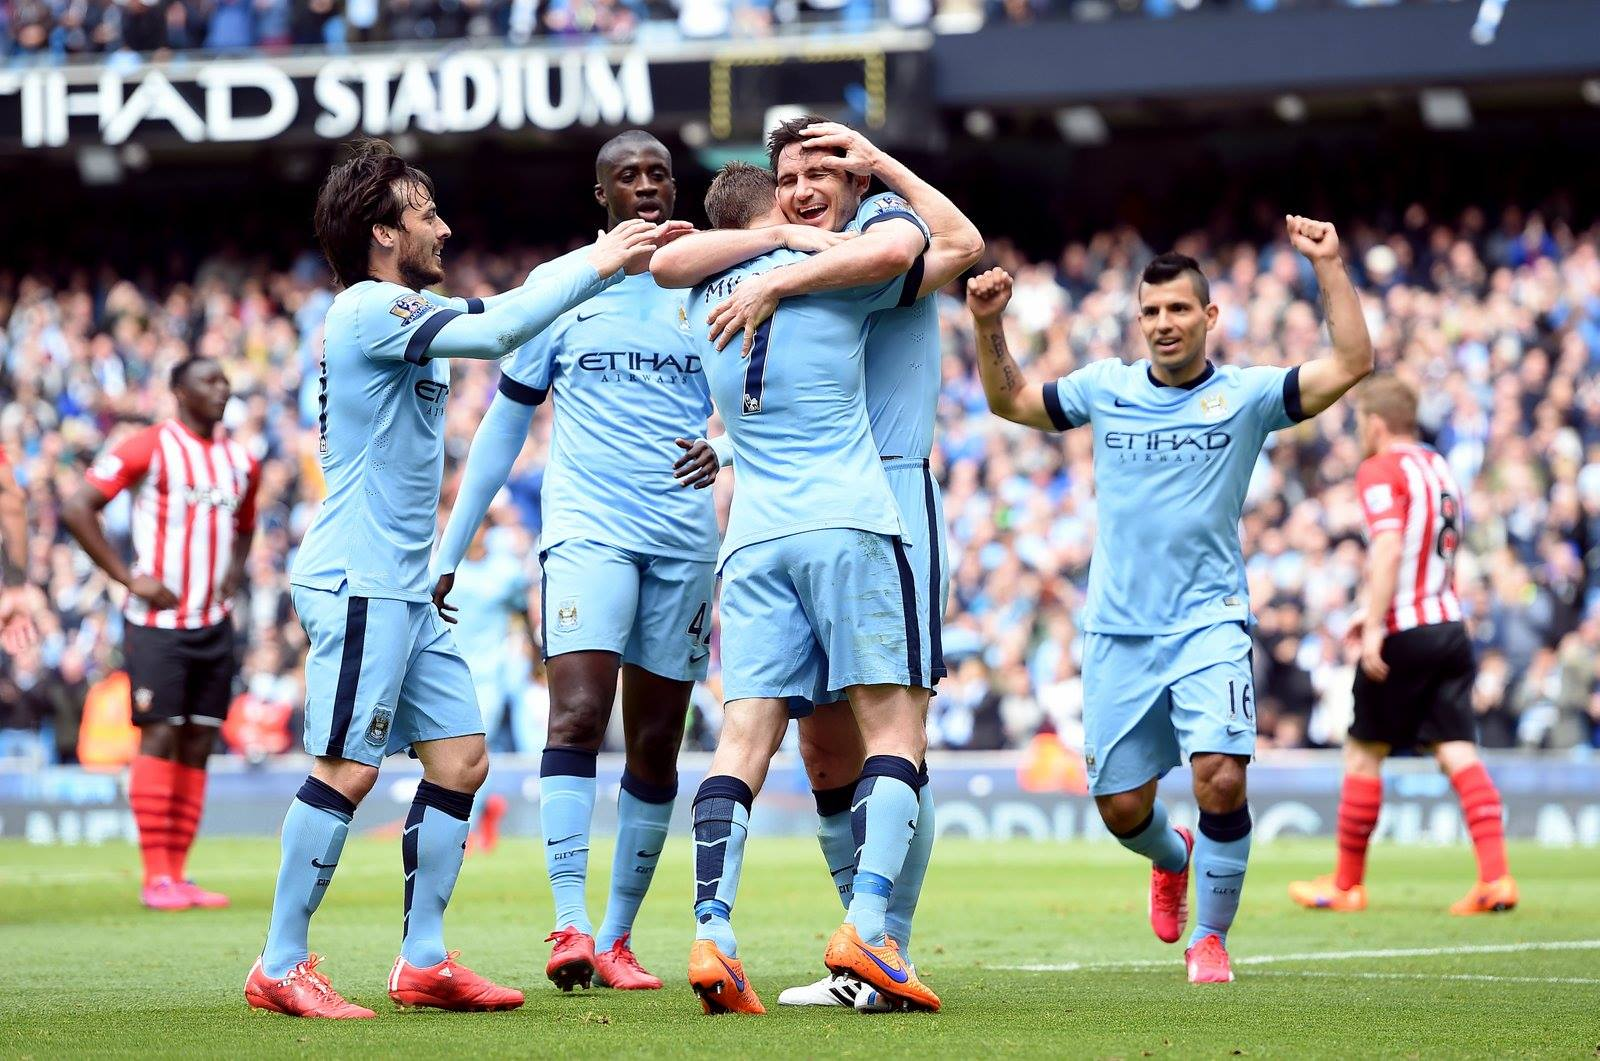 Pulling together - City ensured they finished the season strongly with a good team spirit. Courtesy@MCFC